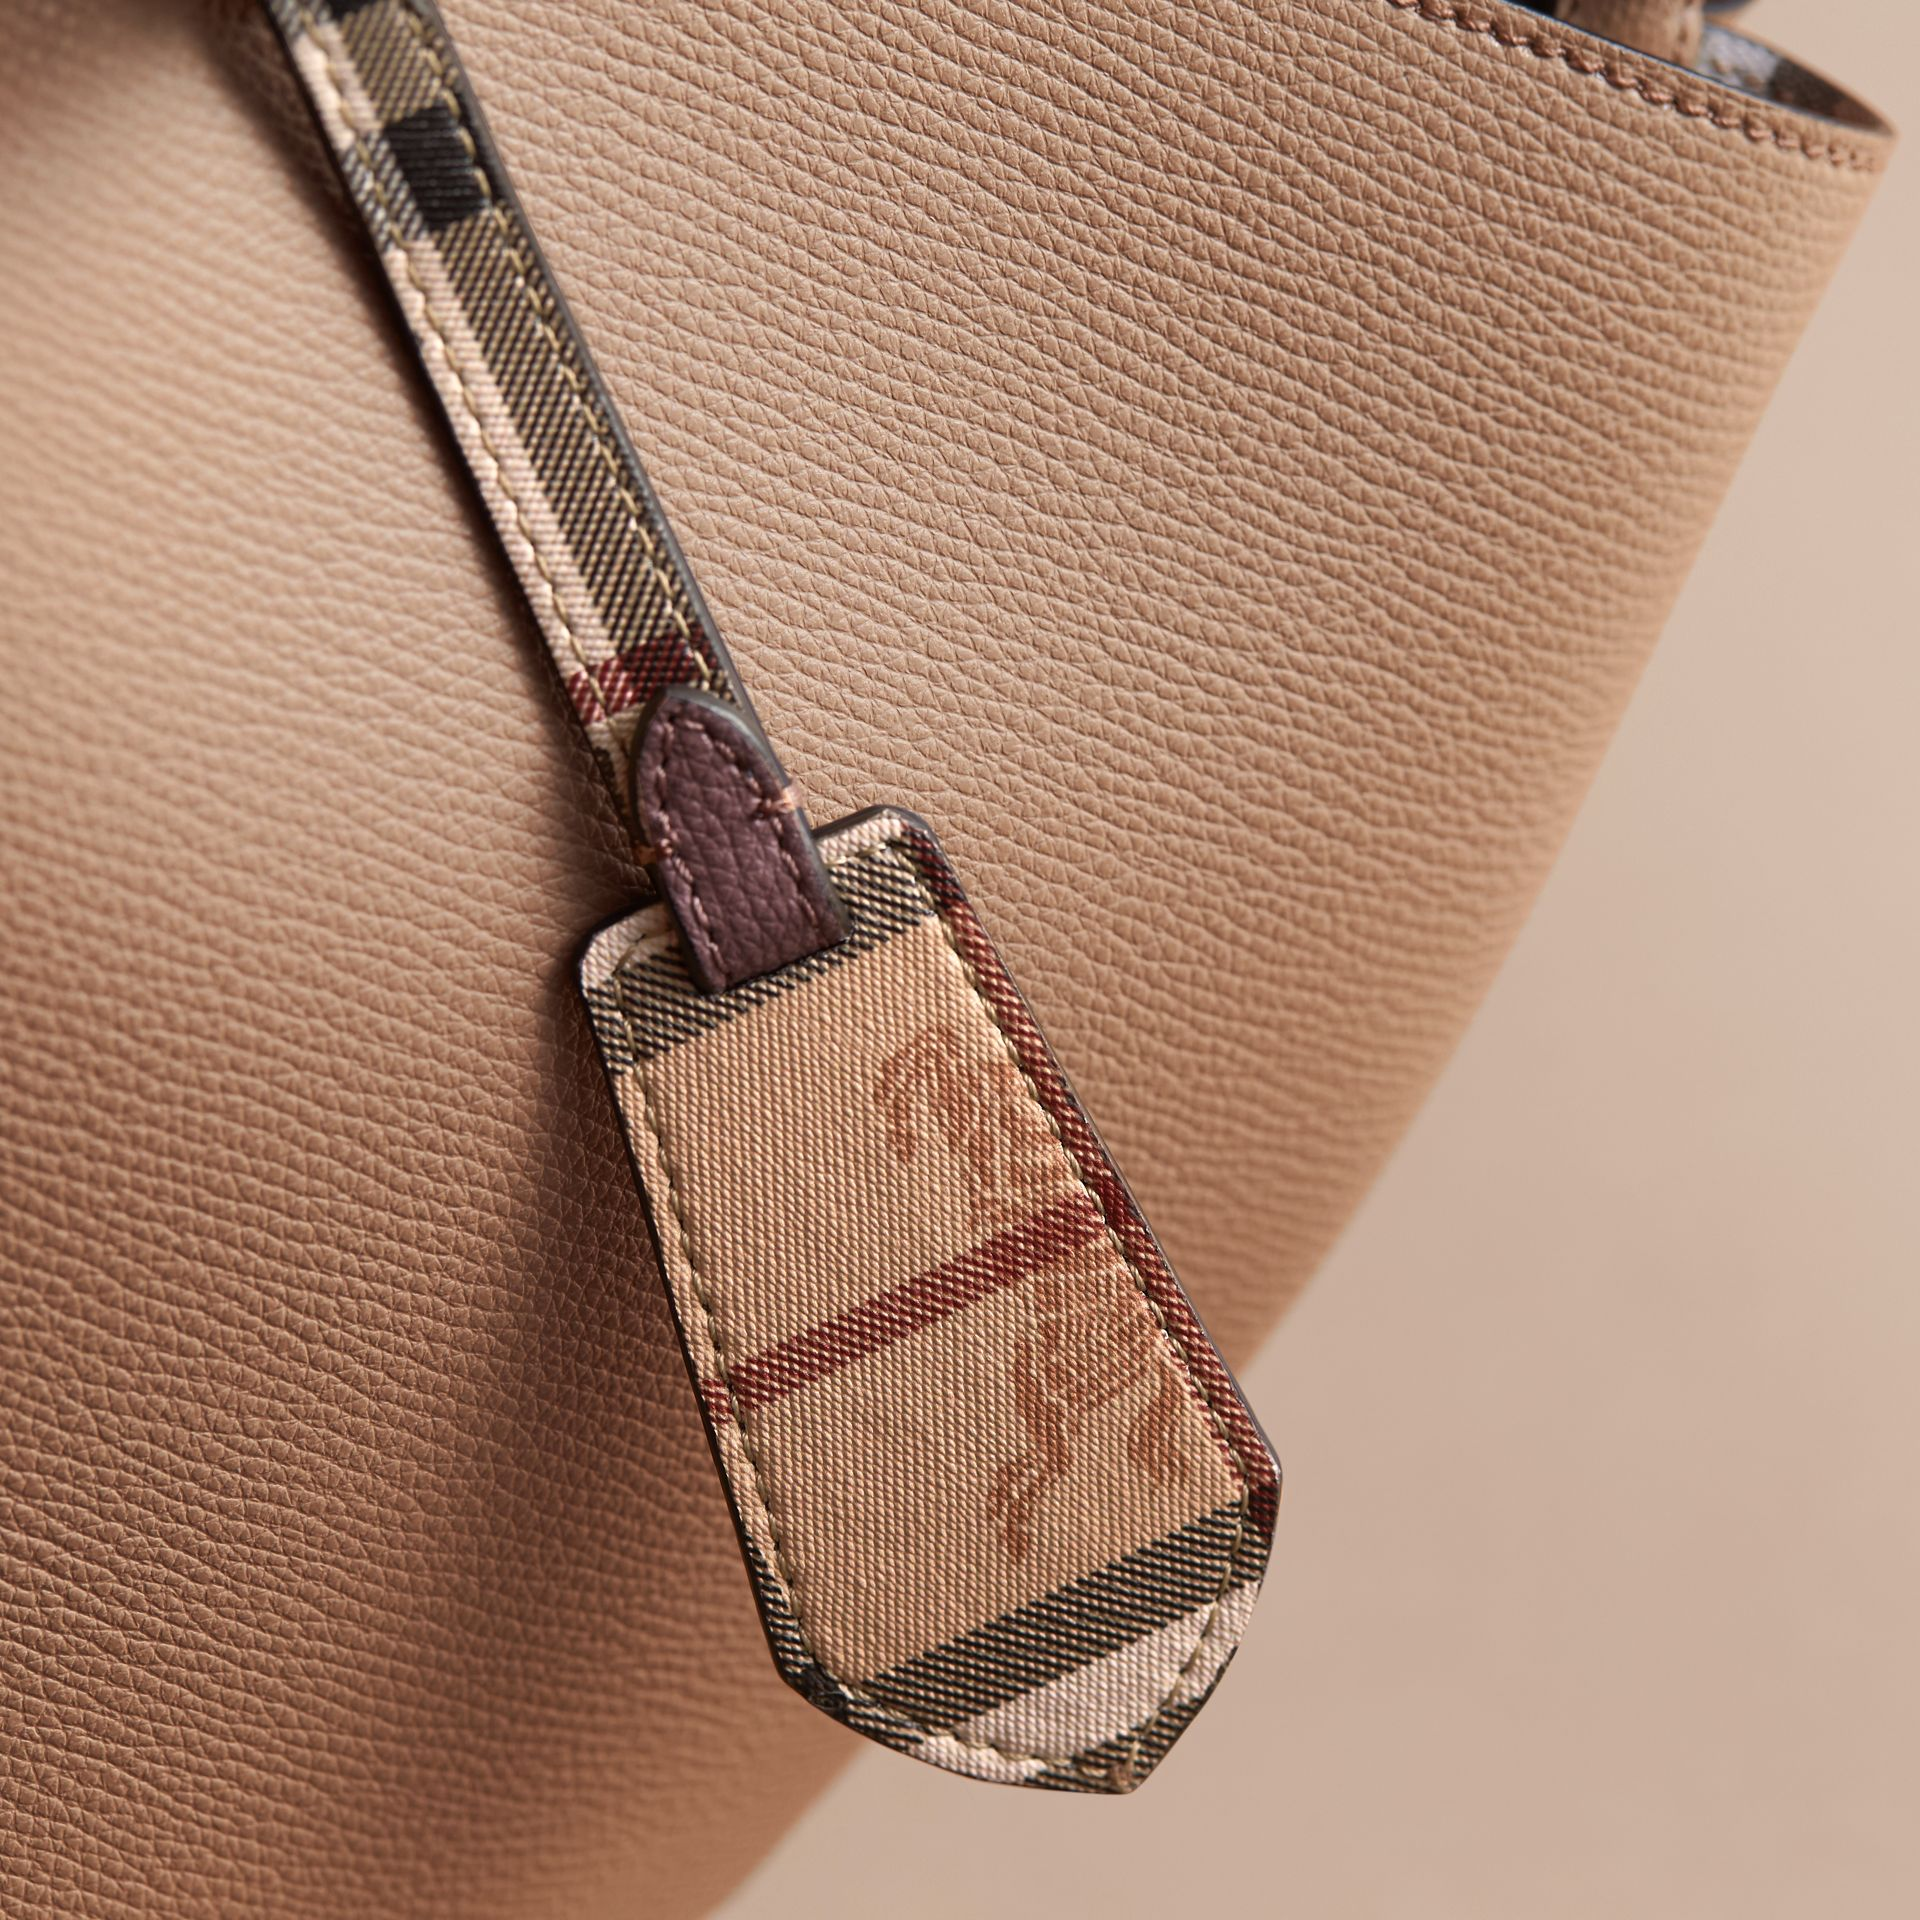 Leather and Haymarket Check Crossbody Bucket Bag in Mid Camel - Women | Burberry United Kingdom - gallery image 2